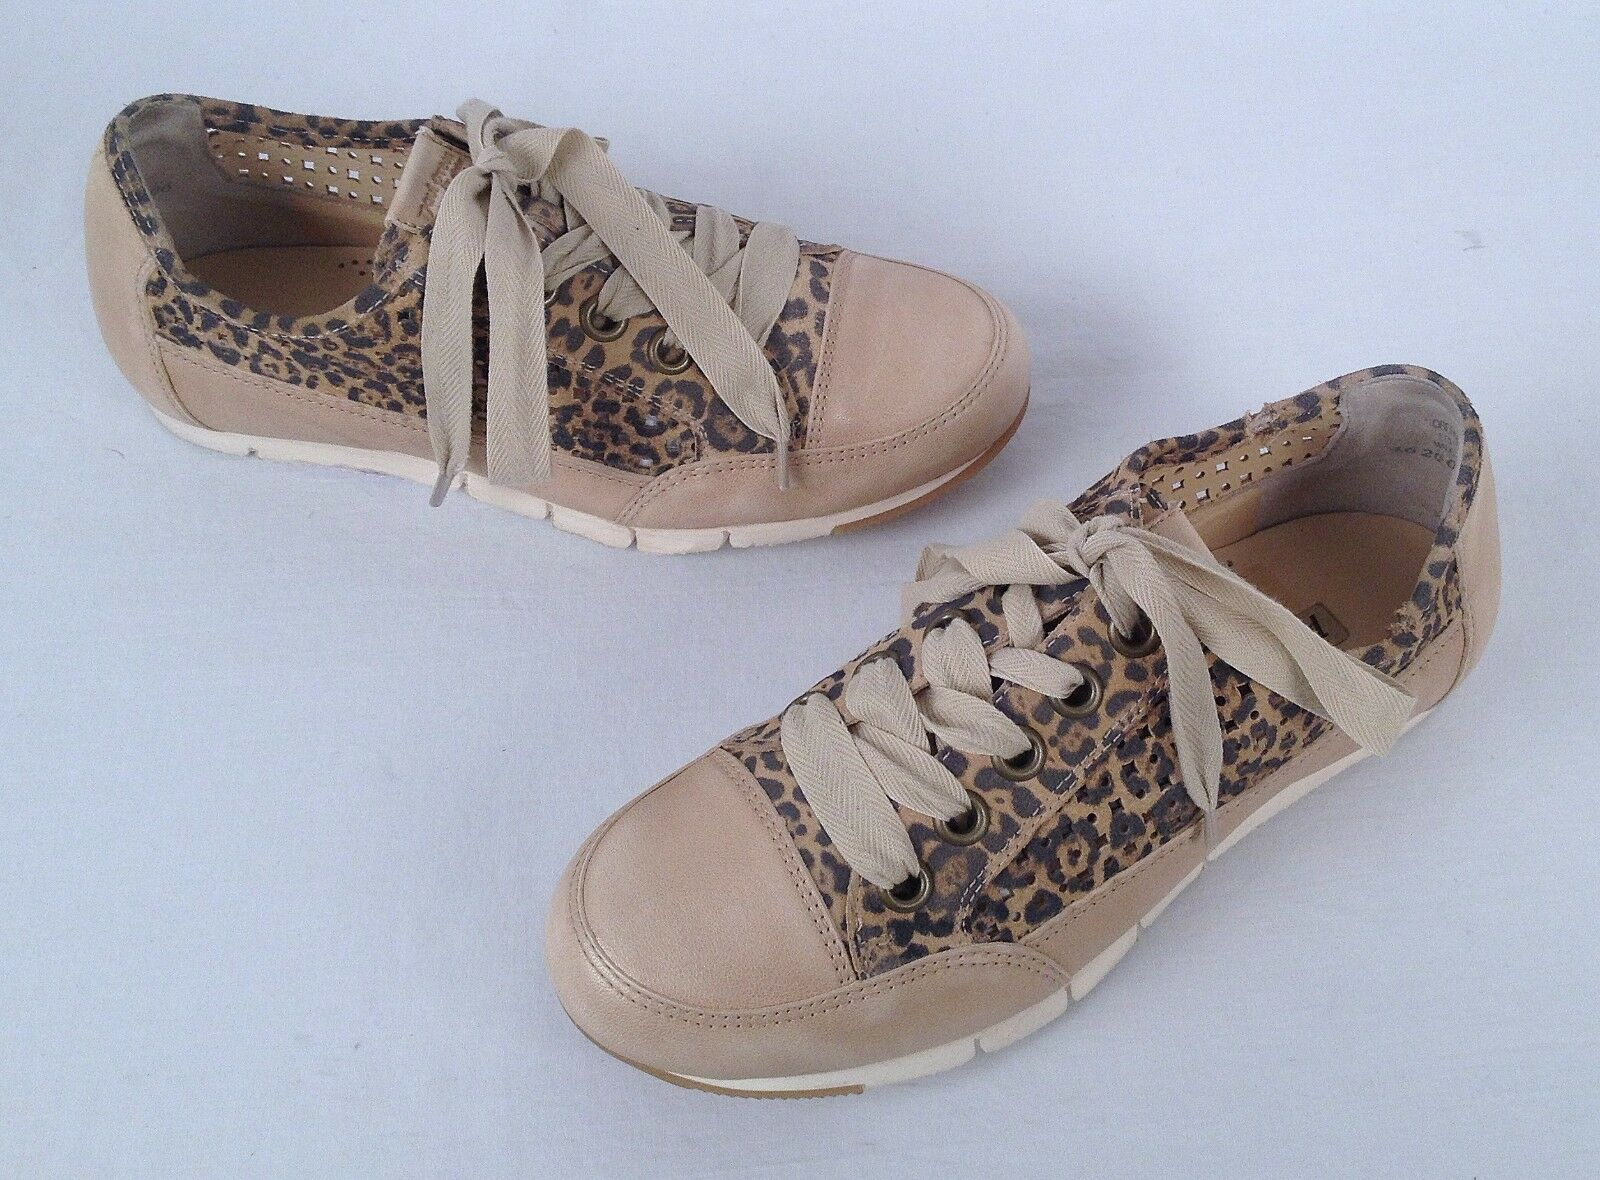 Paul Green Women Leopard 'Posh' Sneaker -Size US 6 US  Aus 3.5-  298  (P1)